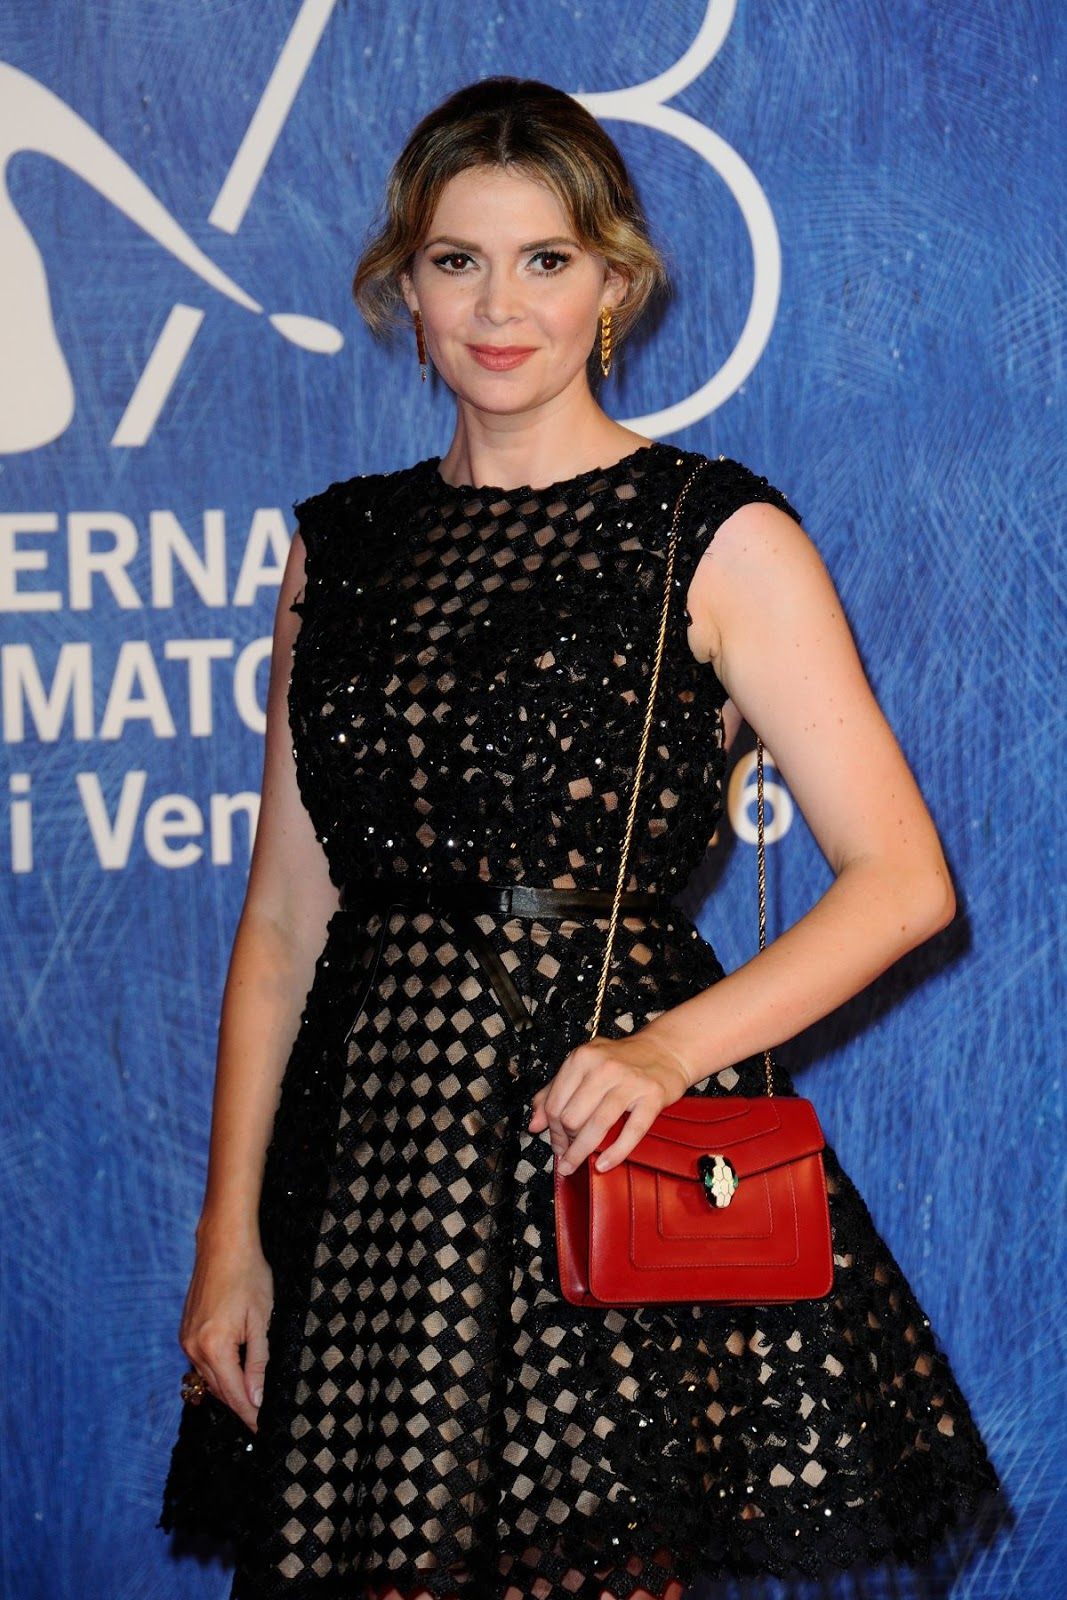 Full HQ Photos of Carly Steel in Black Dress At Franca Chaos And Creation Premiere At 2016 Venice Film Festival